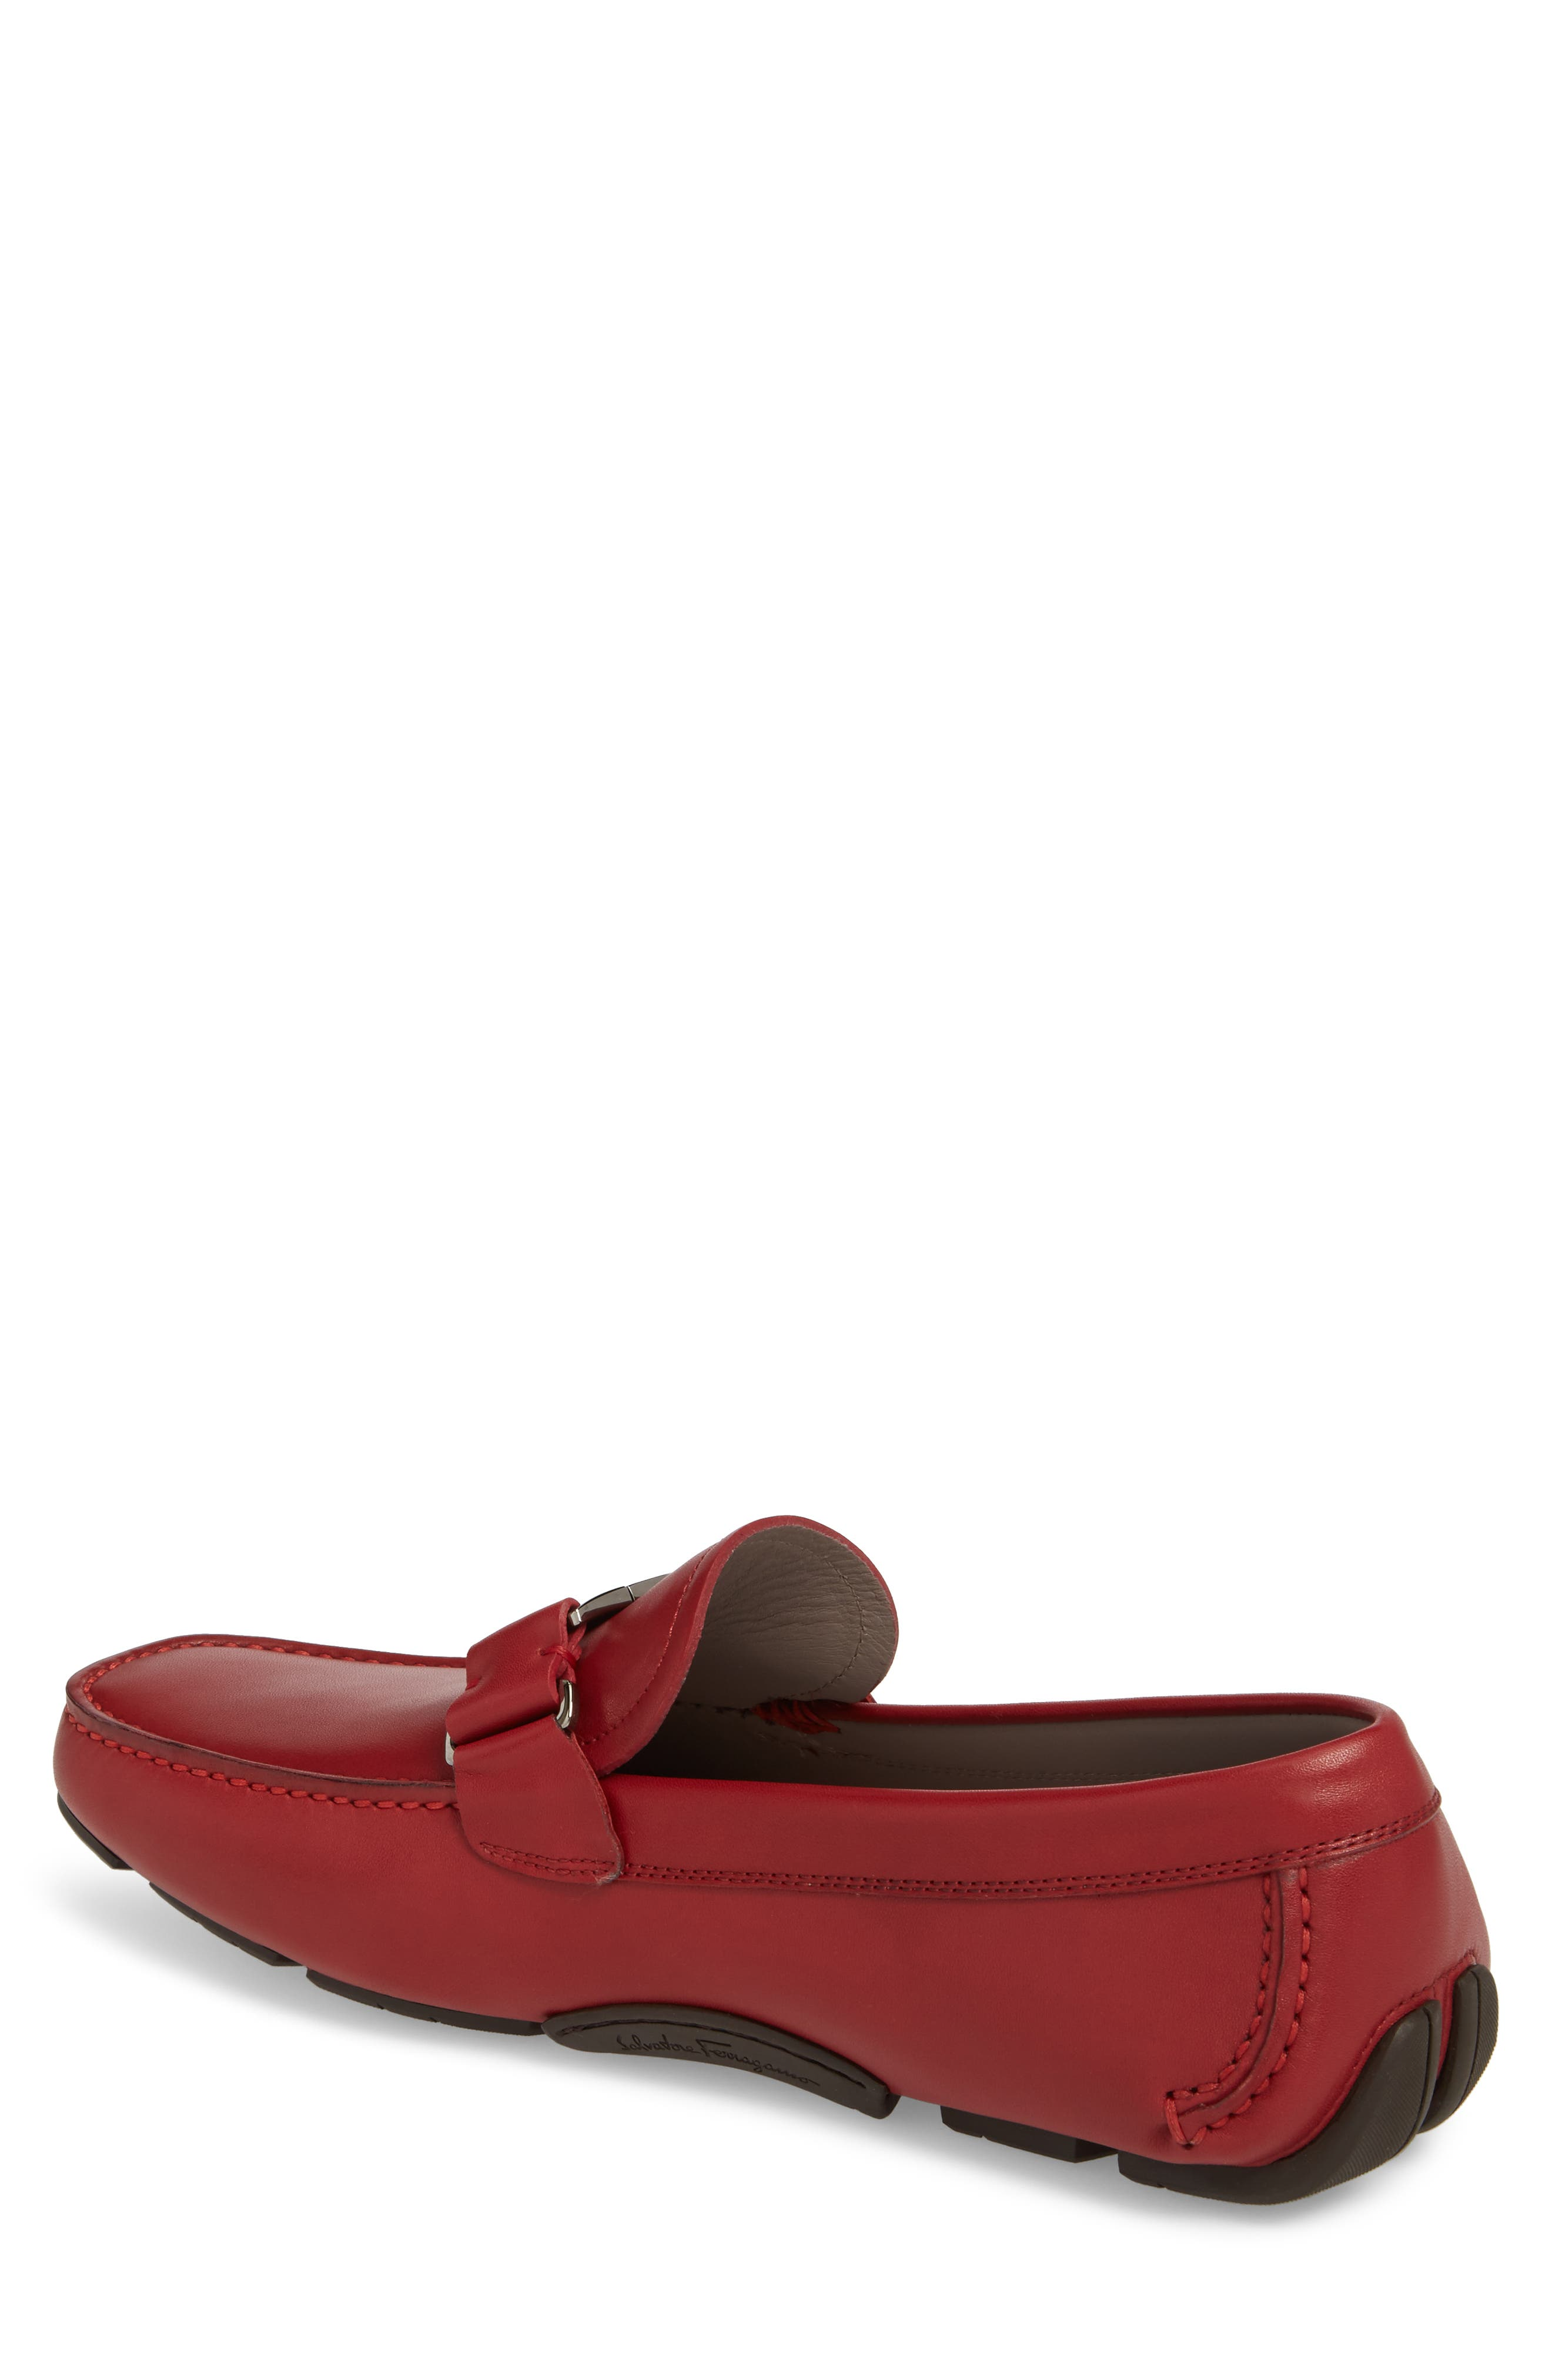 Sardegna Driving Shoe,                             Alternate thumbnail 2, color,                             Red Leather